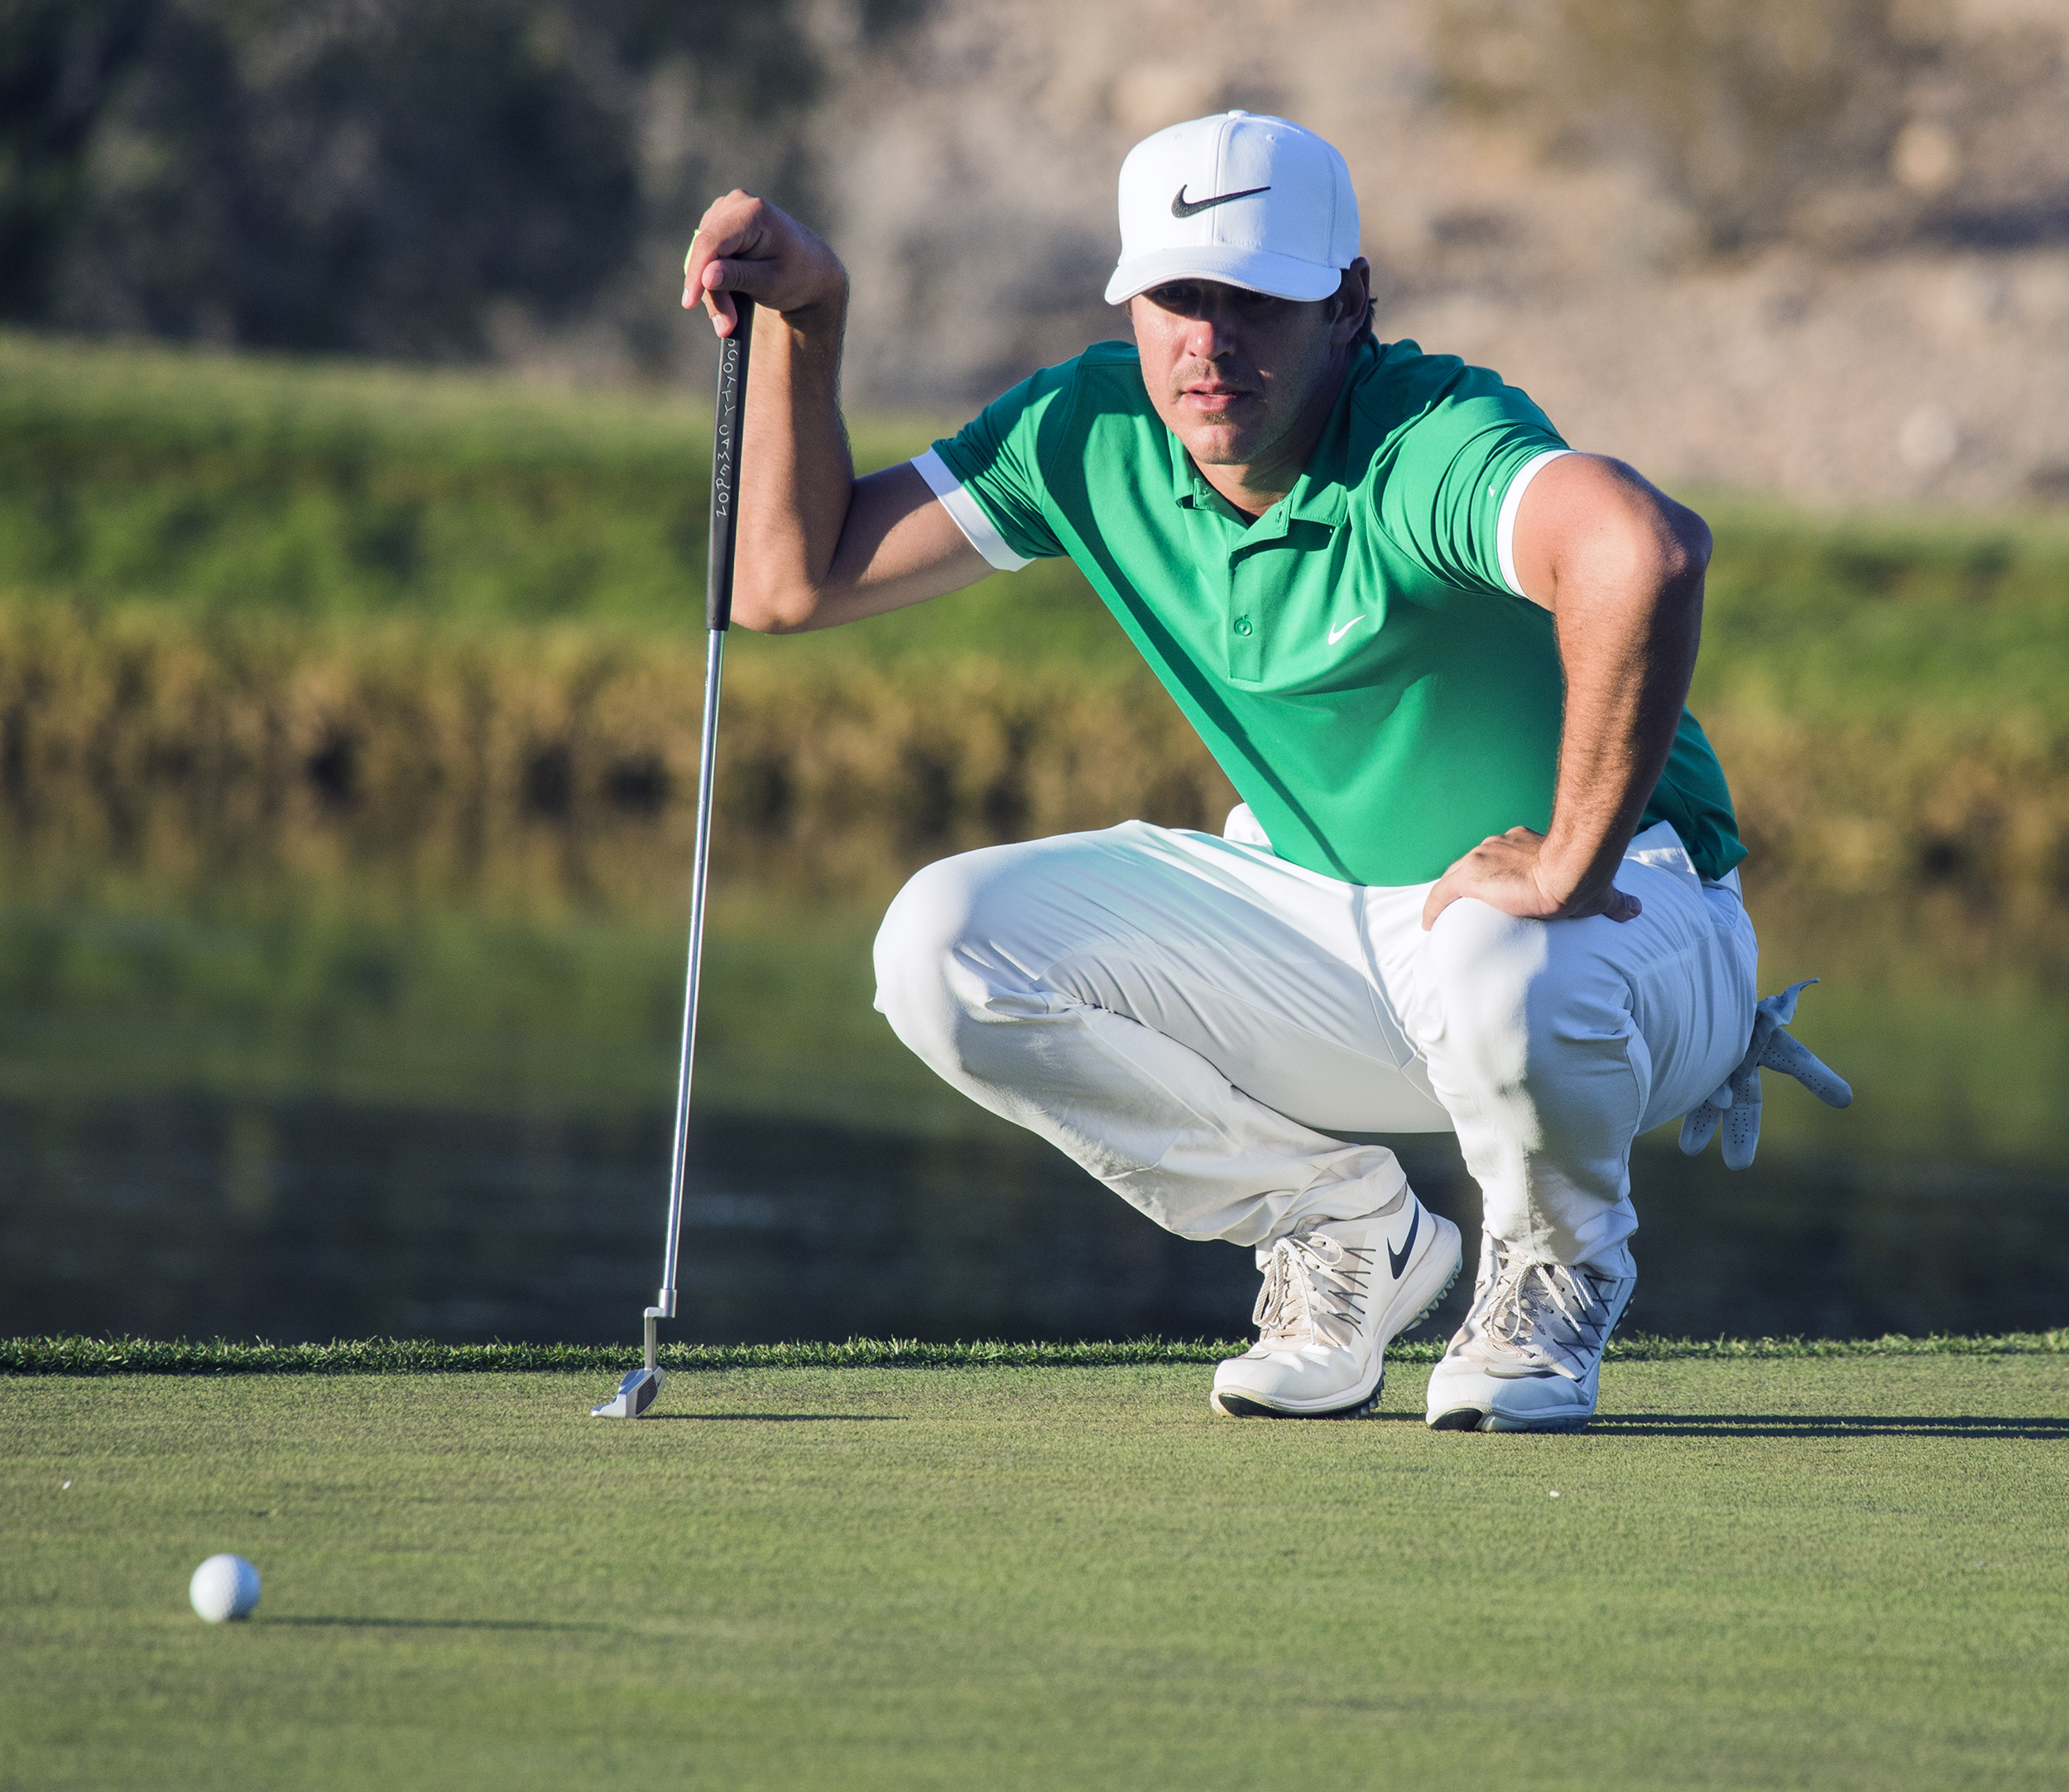 Brooks Koepka lines his putt on the 17th hole during the second round of the Shriners Hospitals for Children Open golf tournament Friday, Nov. 4, 2016, in Las Vegas.